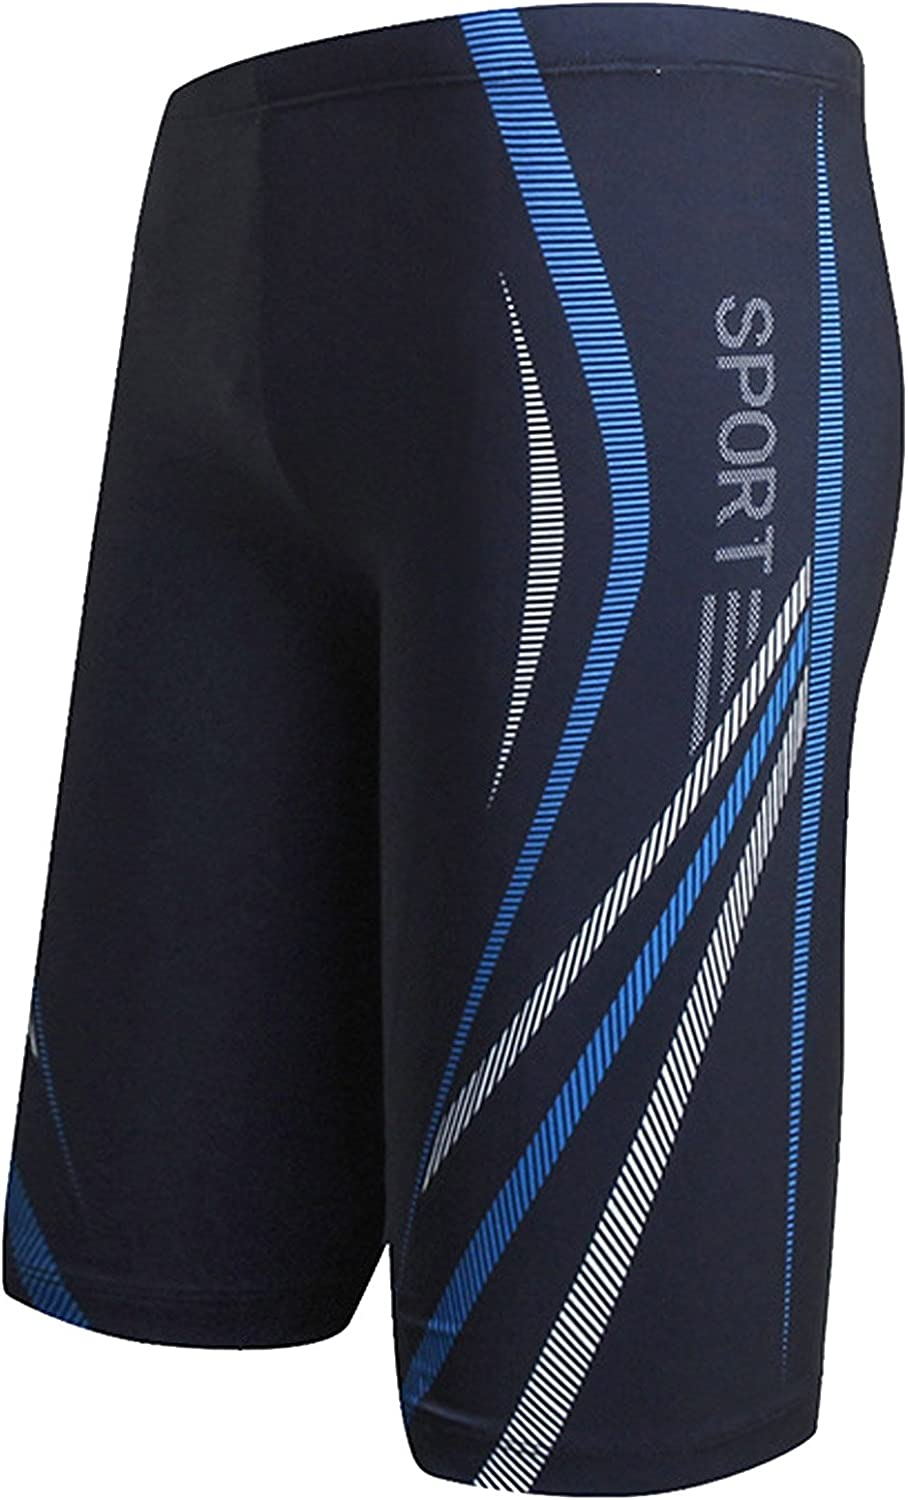 AIEOE Mens Swim Jammers Quick Dry Training Swim Jammer Swimsuit Trunk